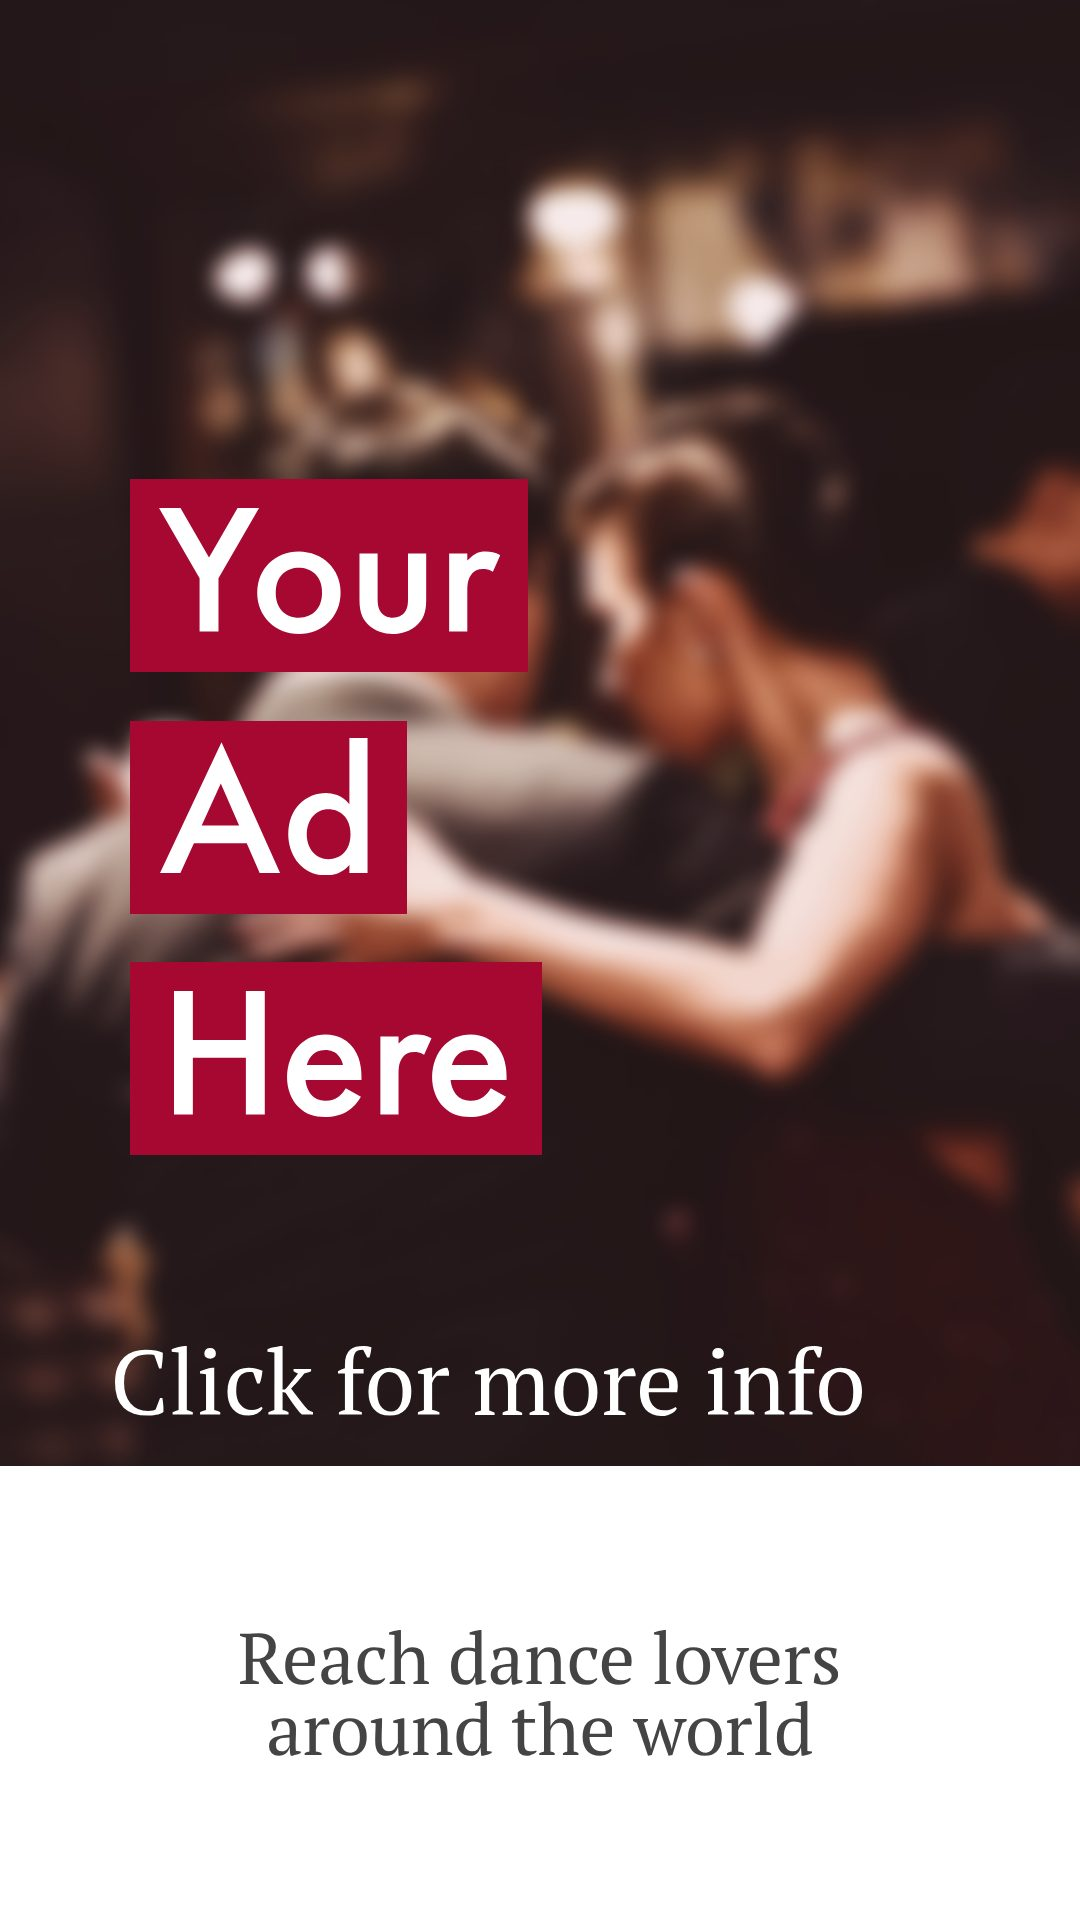 Tango Advertisments, dance ads